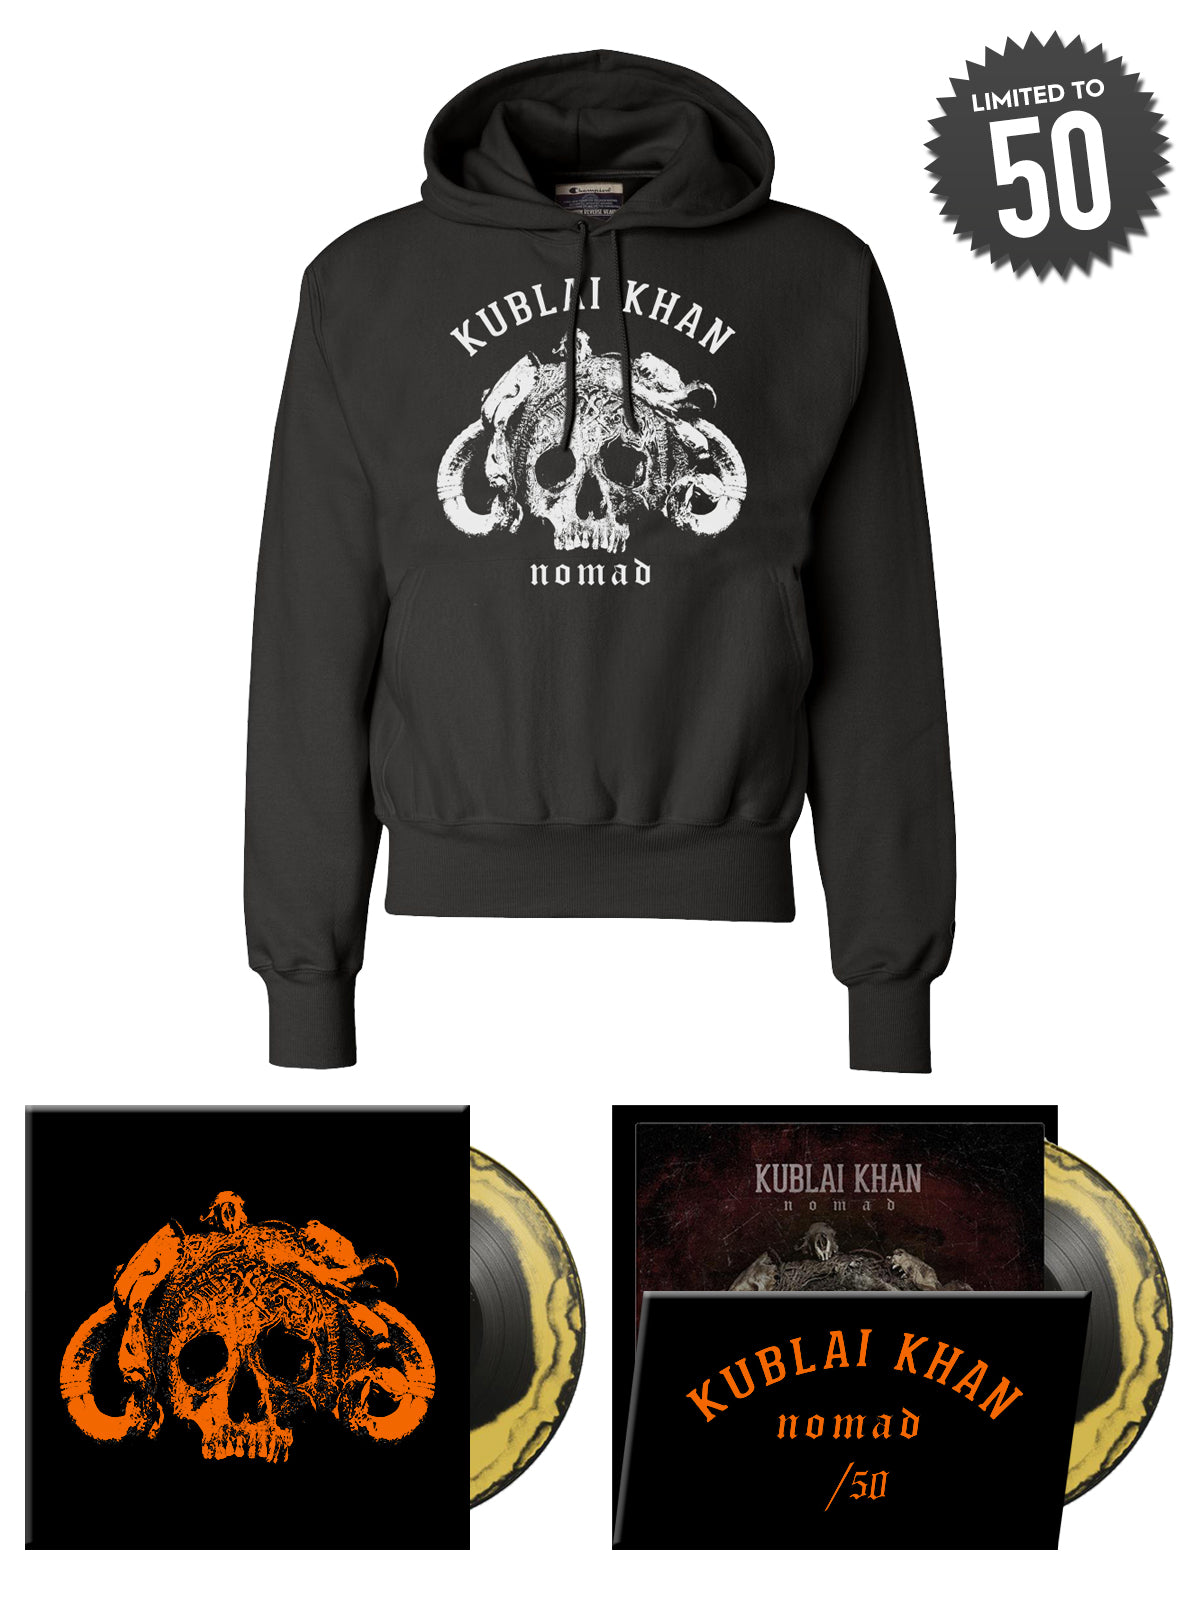 Kublai Khan - Nomad Vinyl Bundle - Merch Limited